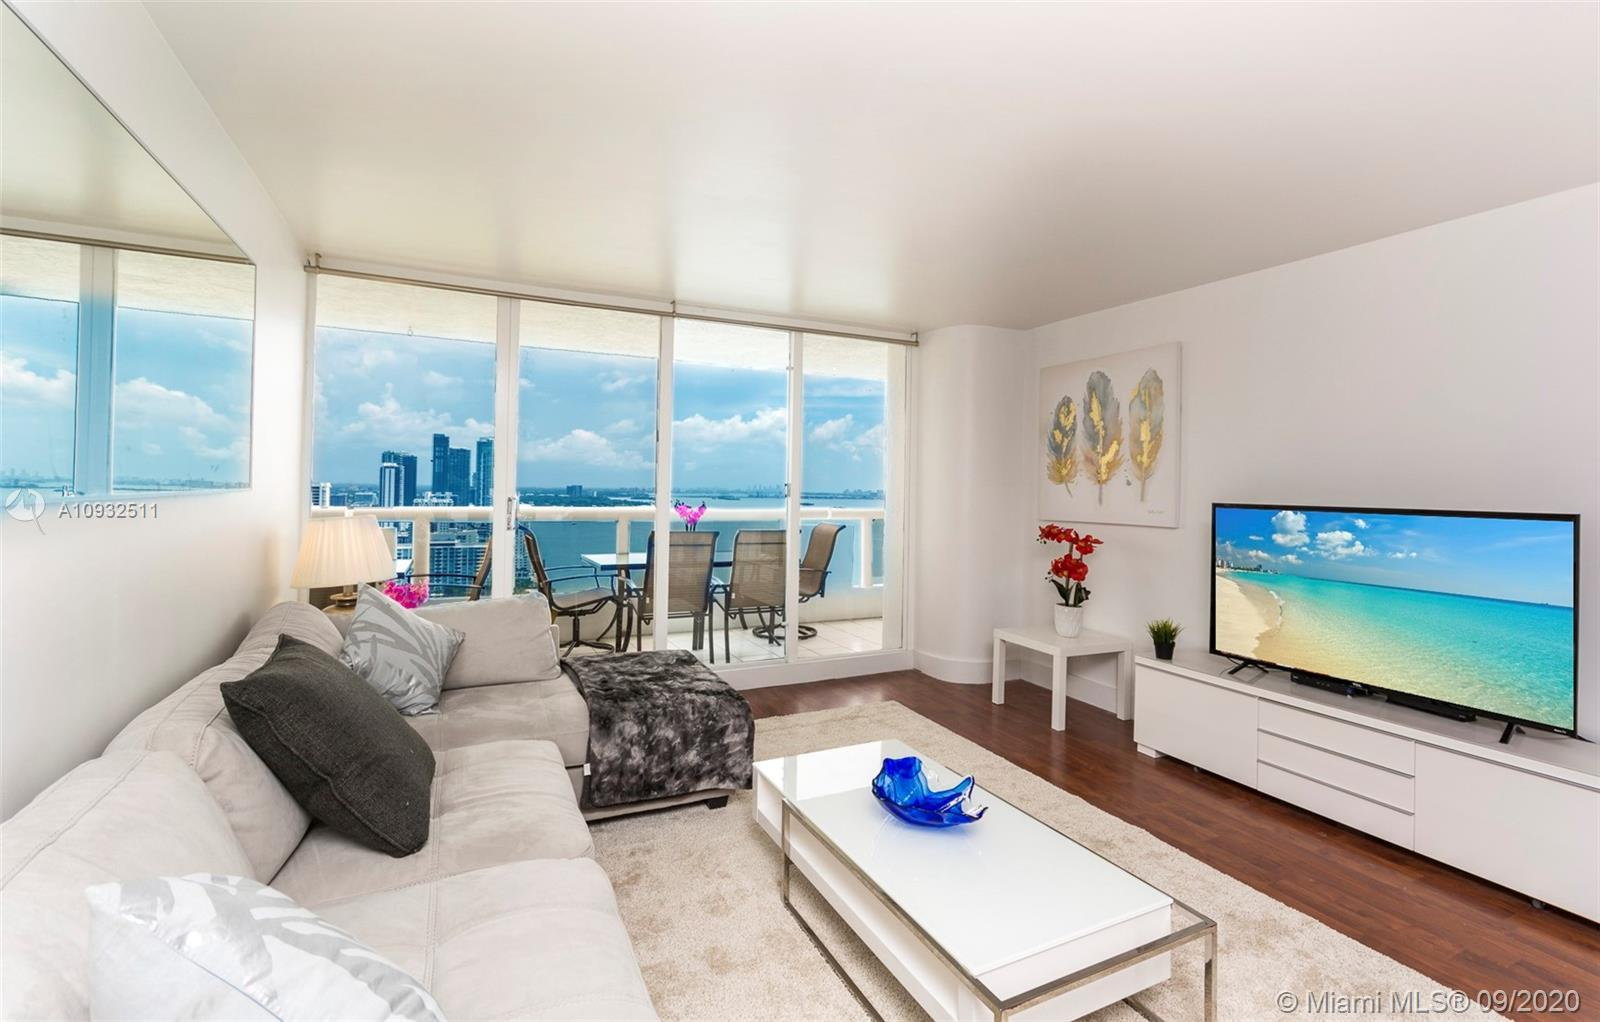 Price to Sell Fast - 1450sf Recently Remodeled and Fully Furnished... Breathtaking water views and i